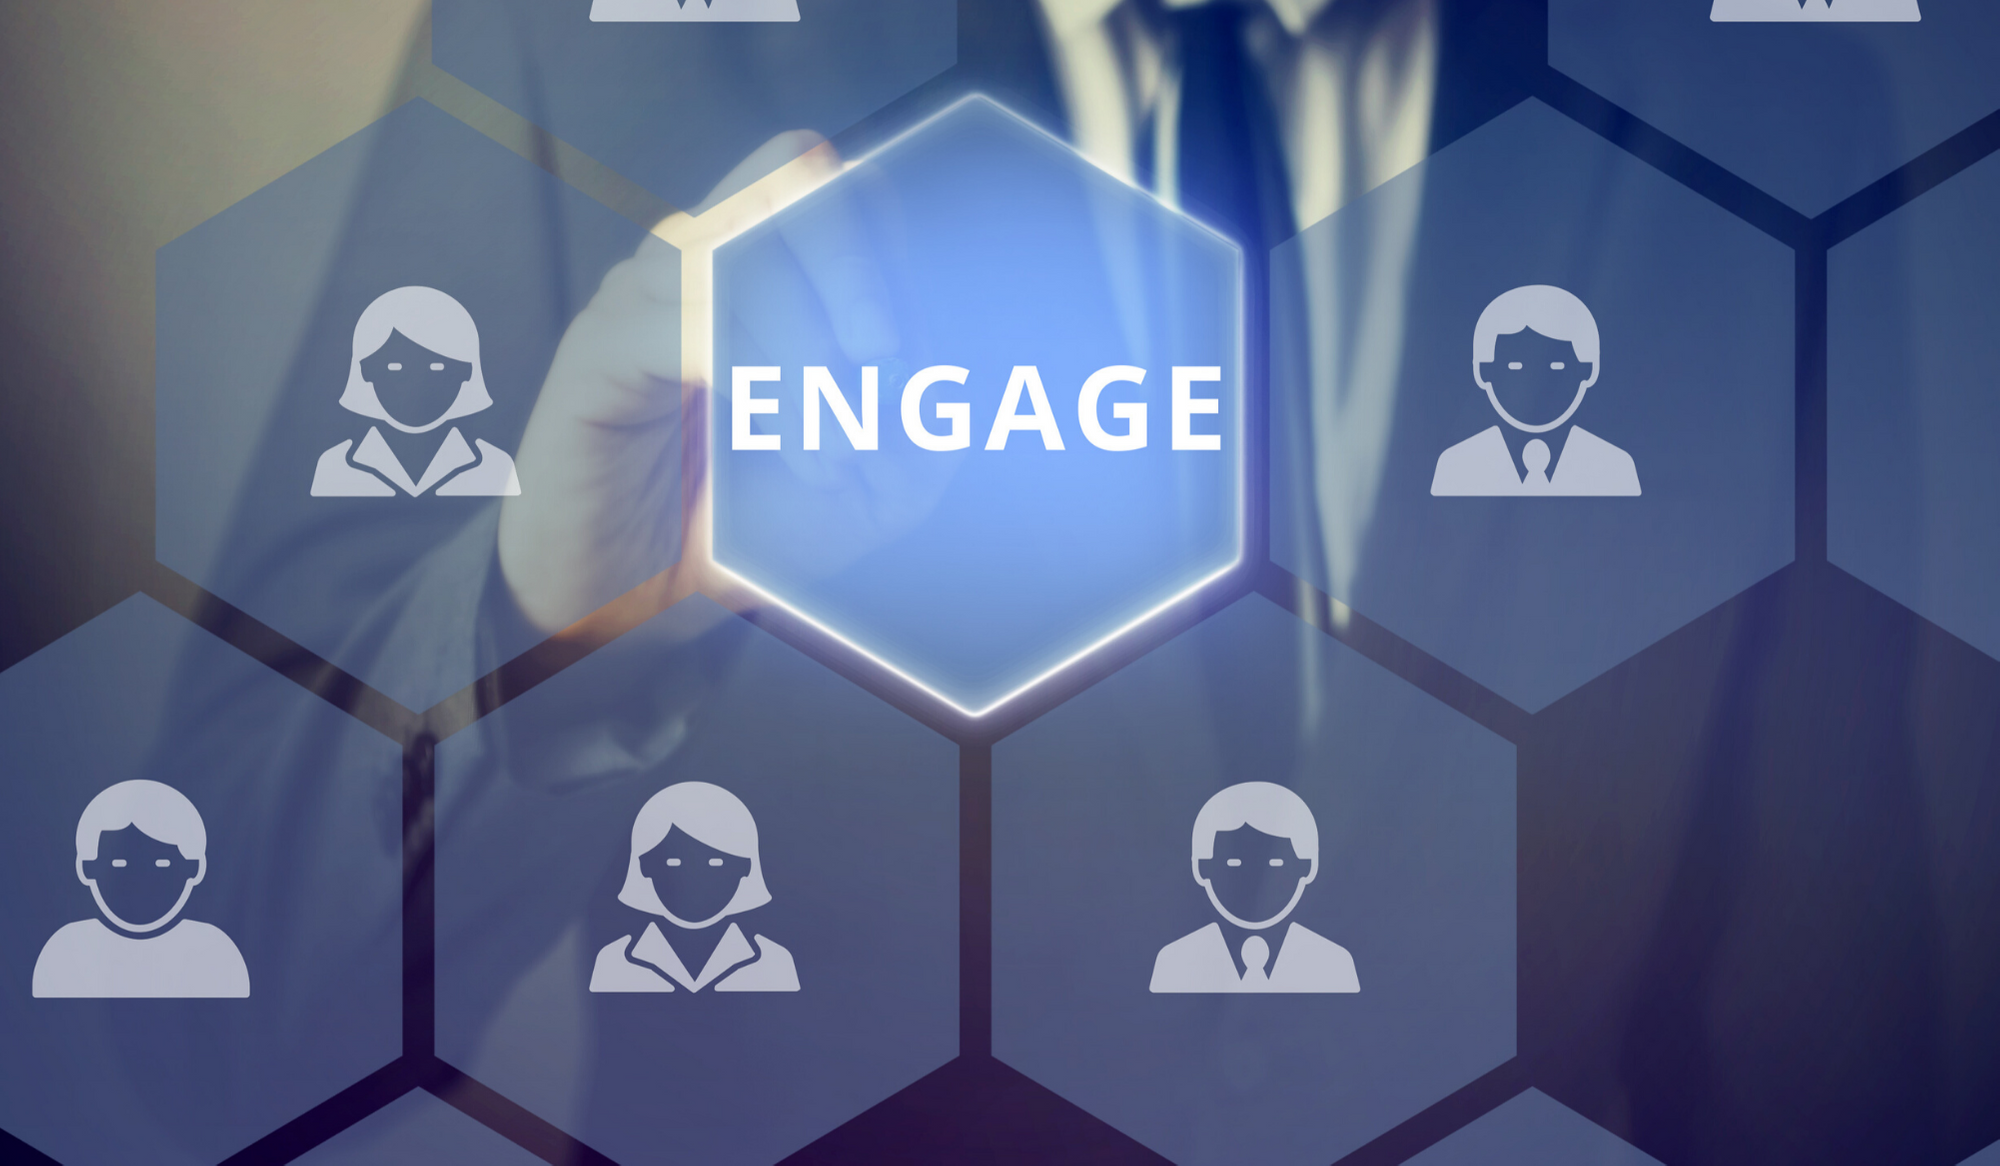 How To Increase Engagement in Your Online Community